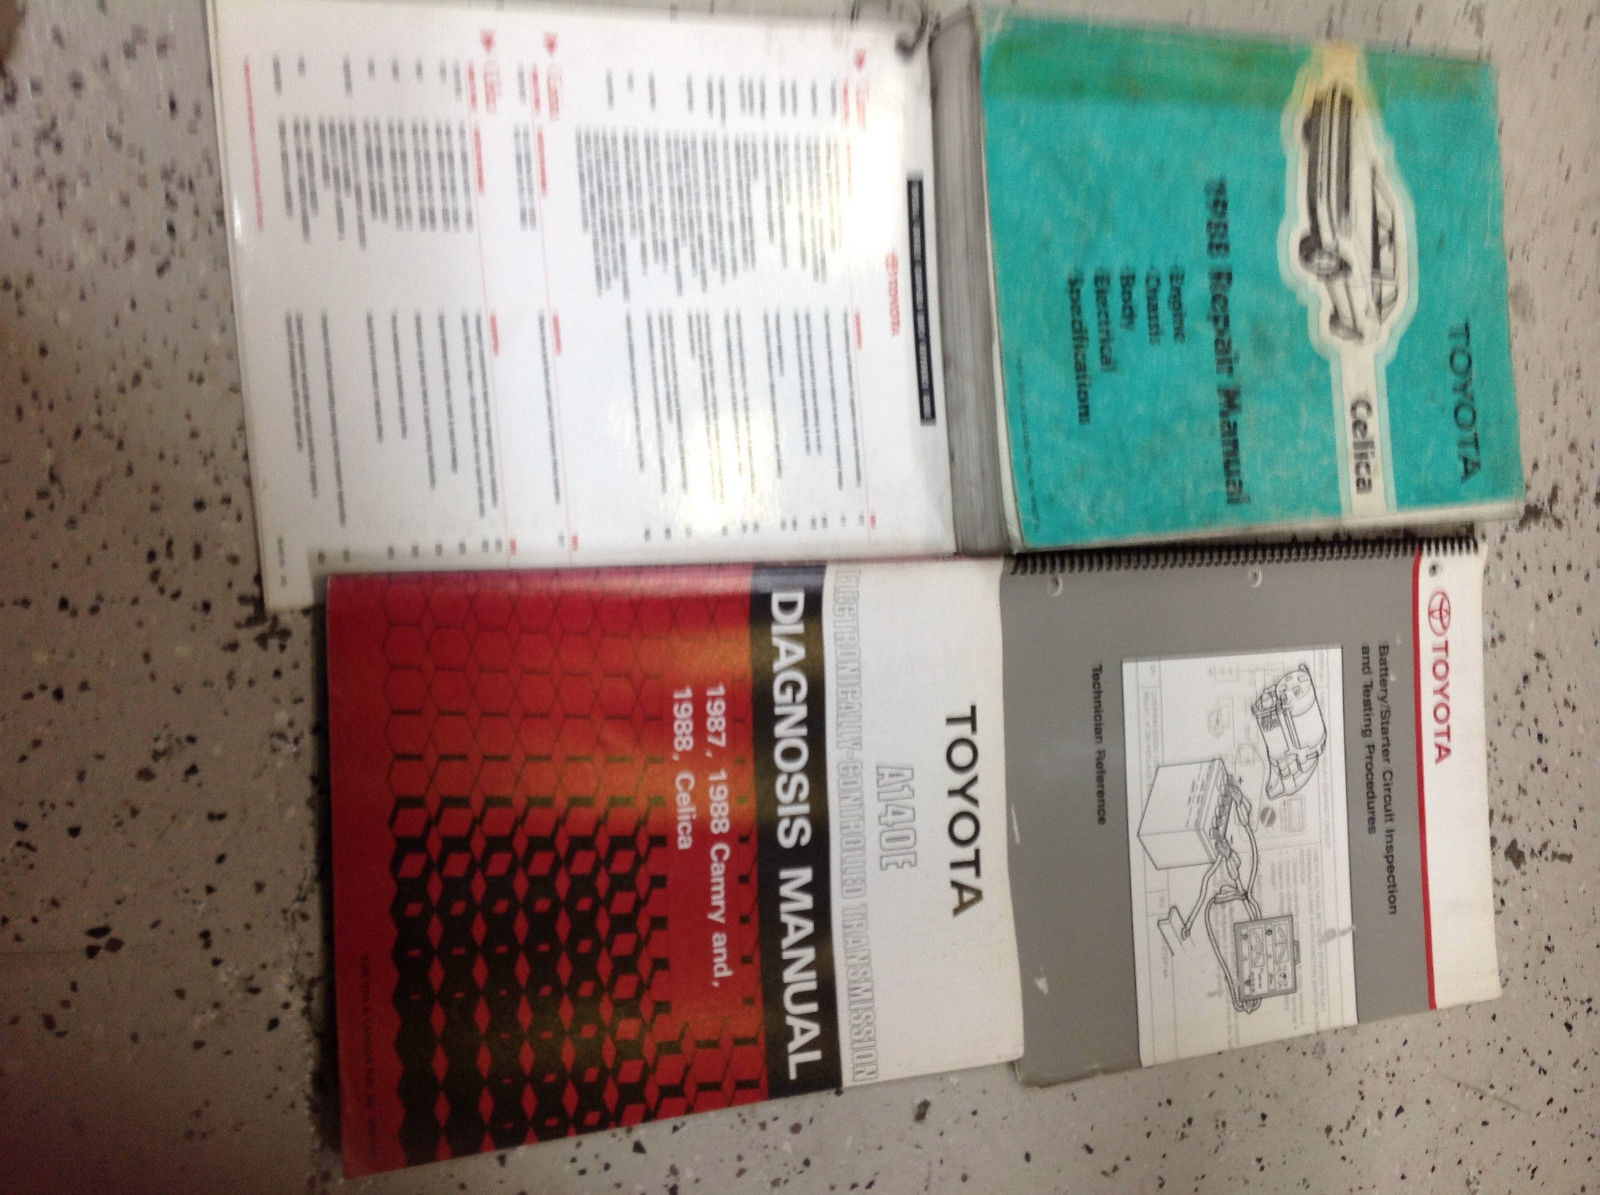 1988 TOYOTA CELICA Service Repair Workshop Shop Manual OEM Set